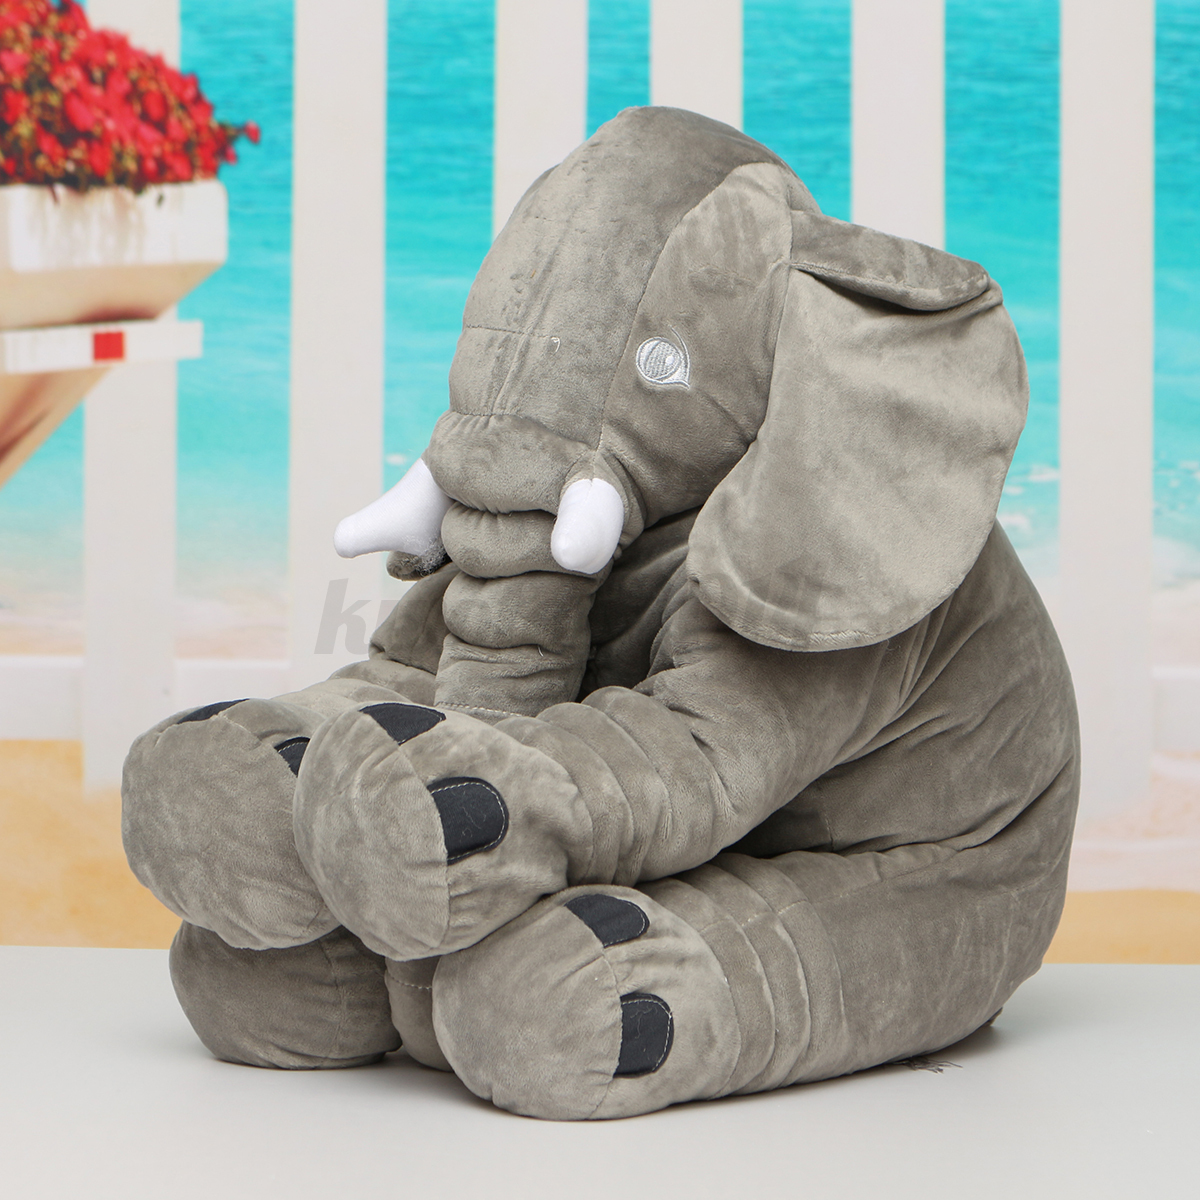 50cm Large Big Elephant Pillows Cushion Baby Plush Toy Stuffed Animal Kids Gift eBay